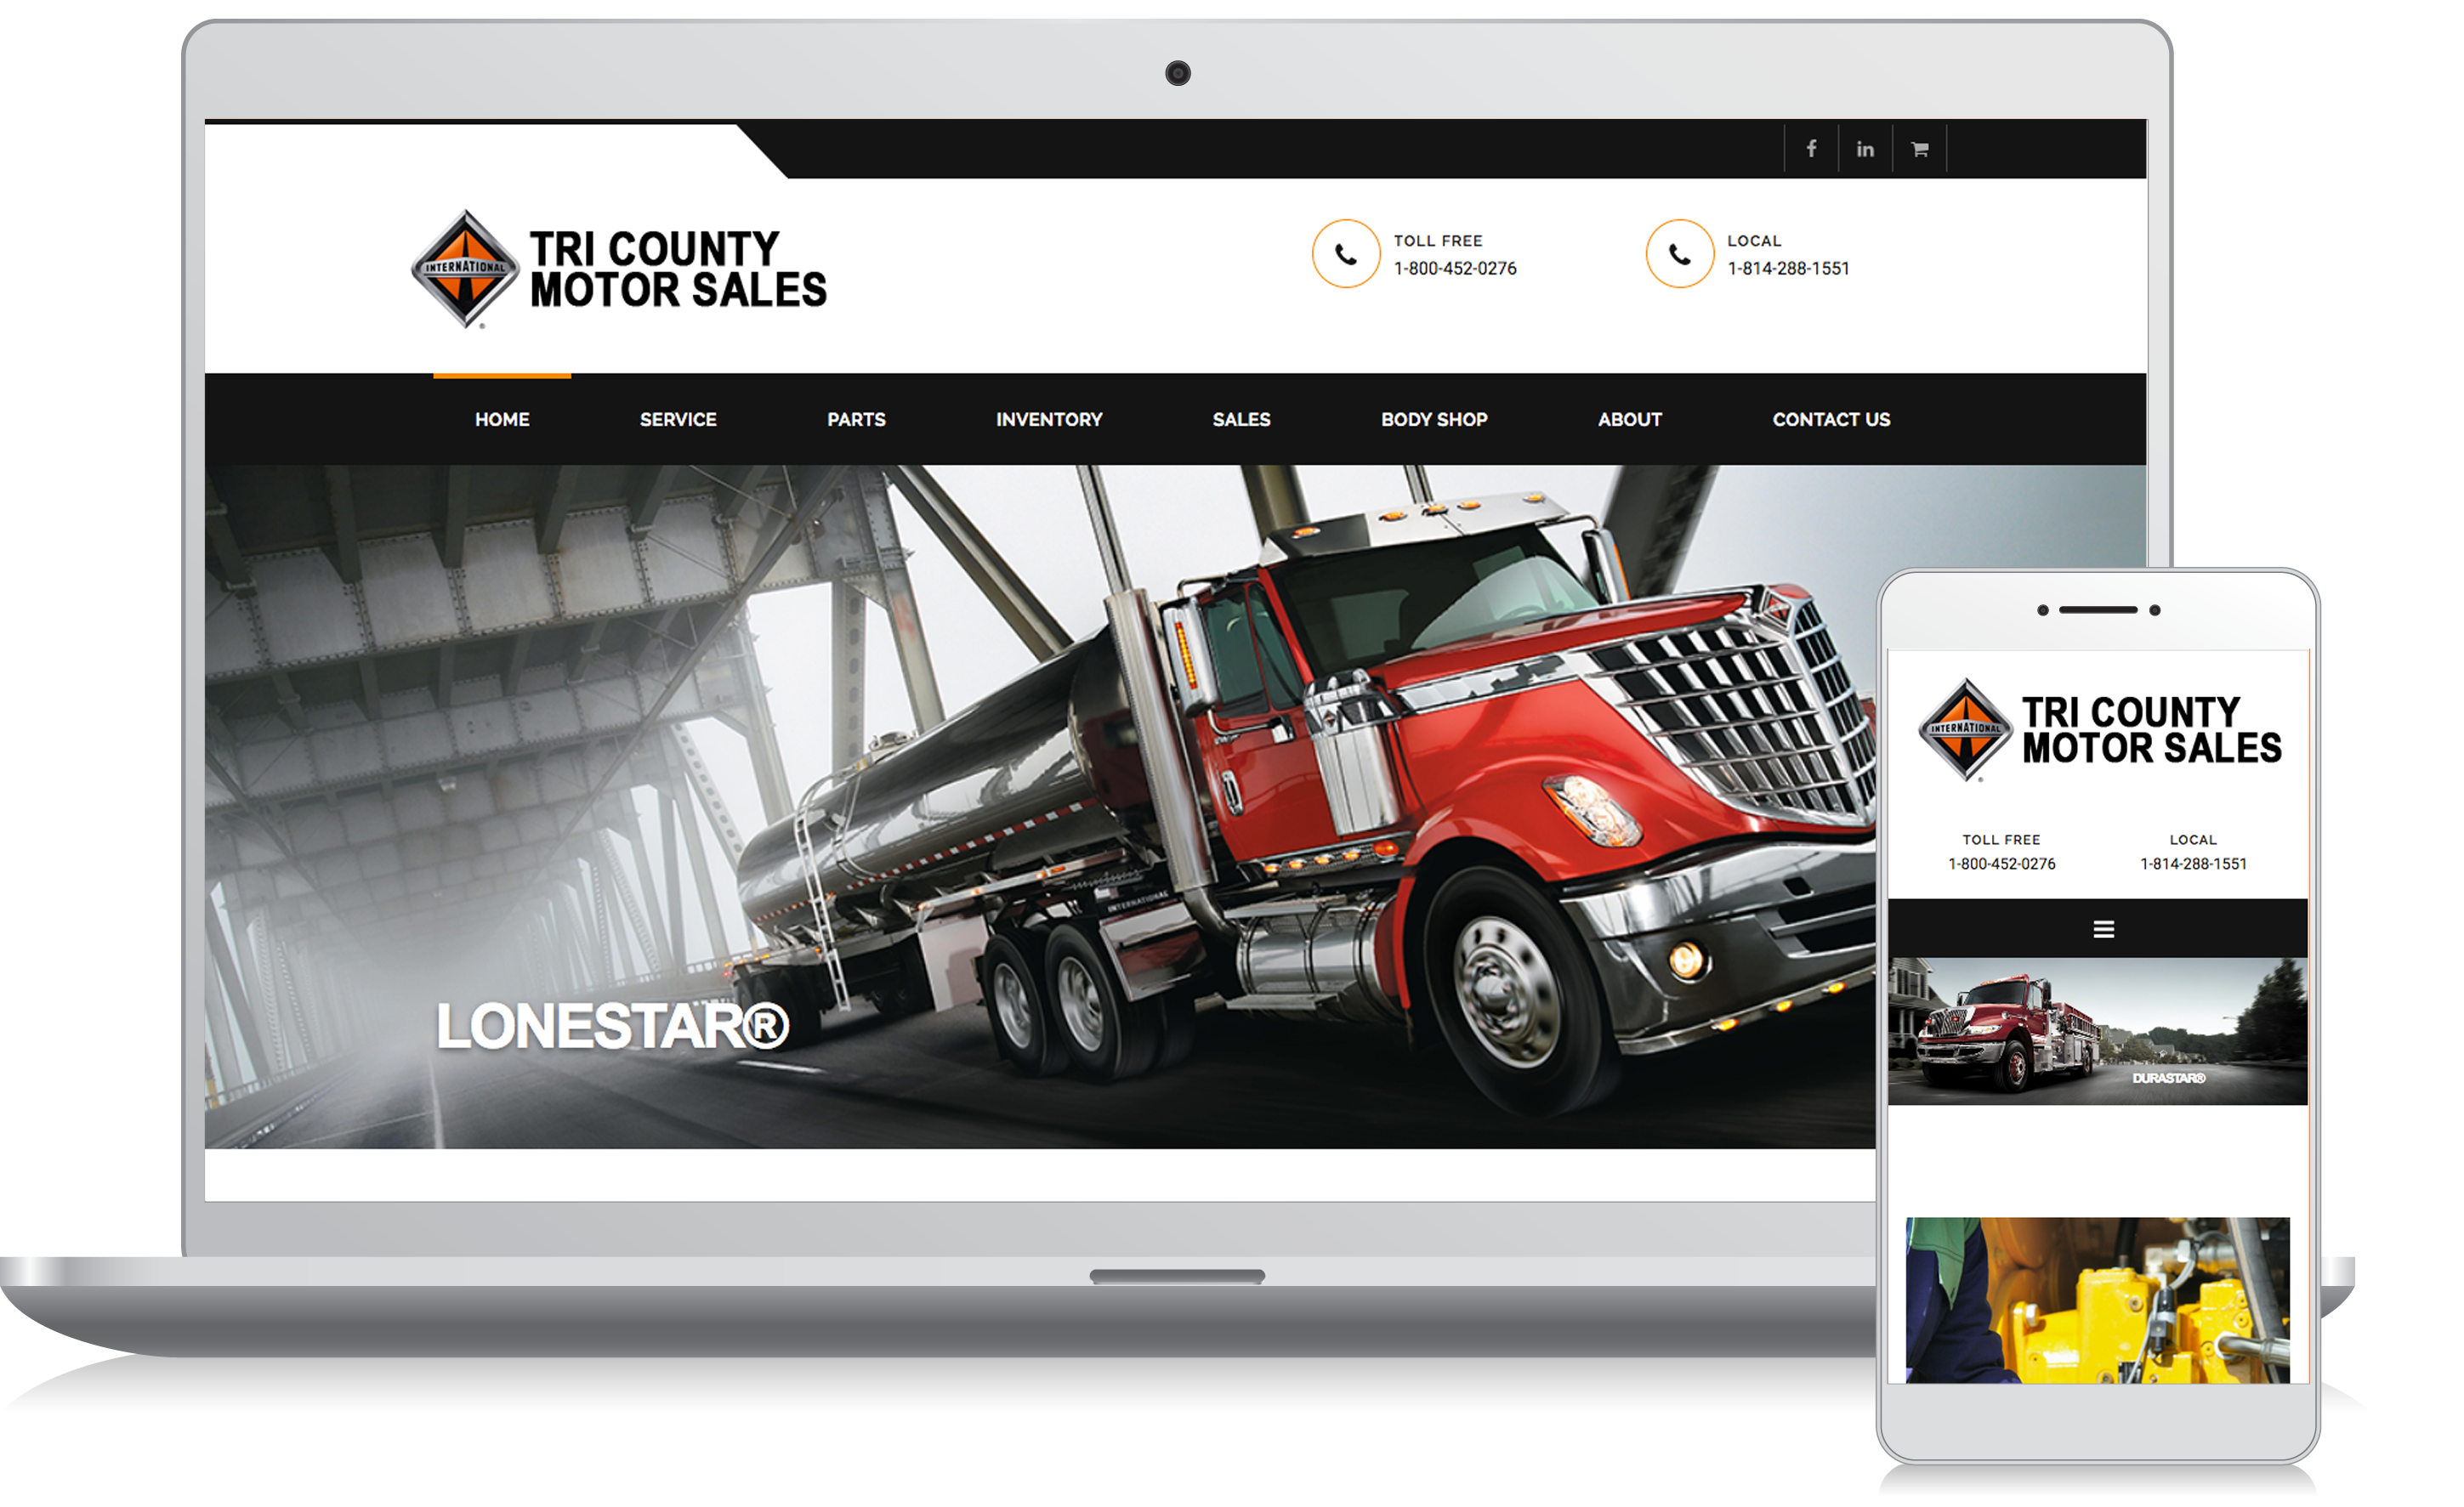 Cellphone and computer image of the Tri County Motor Sales website homepage